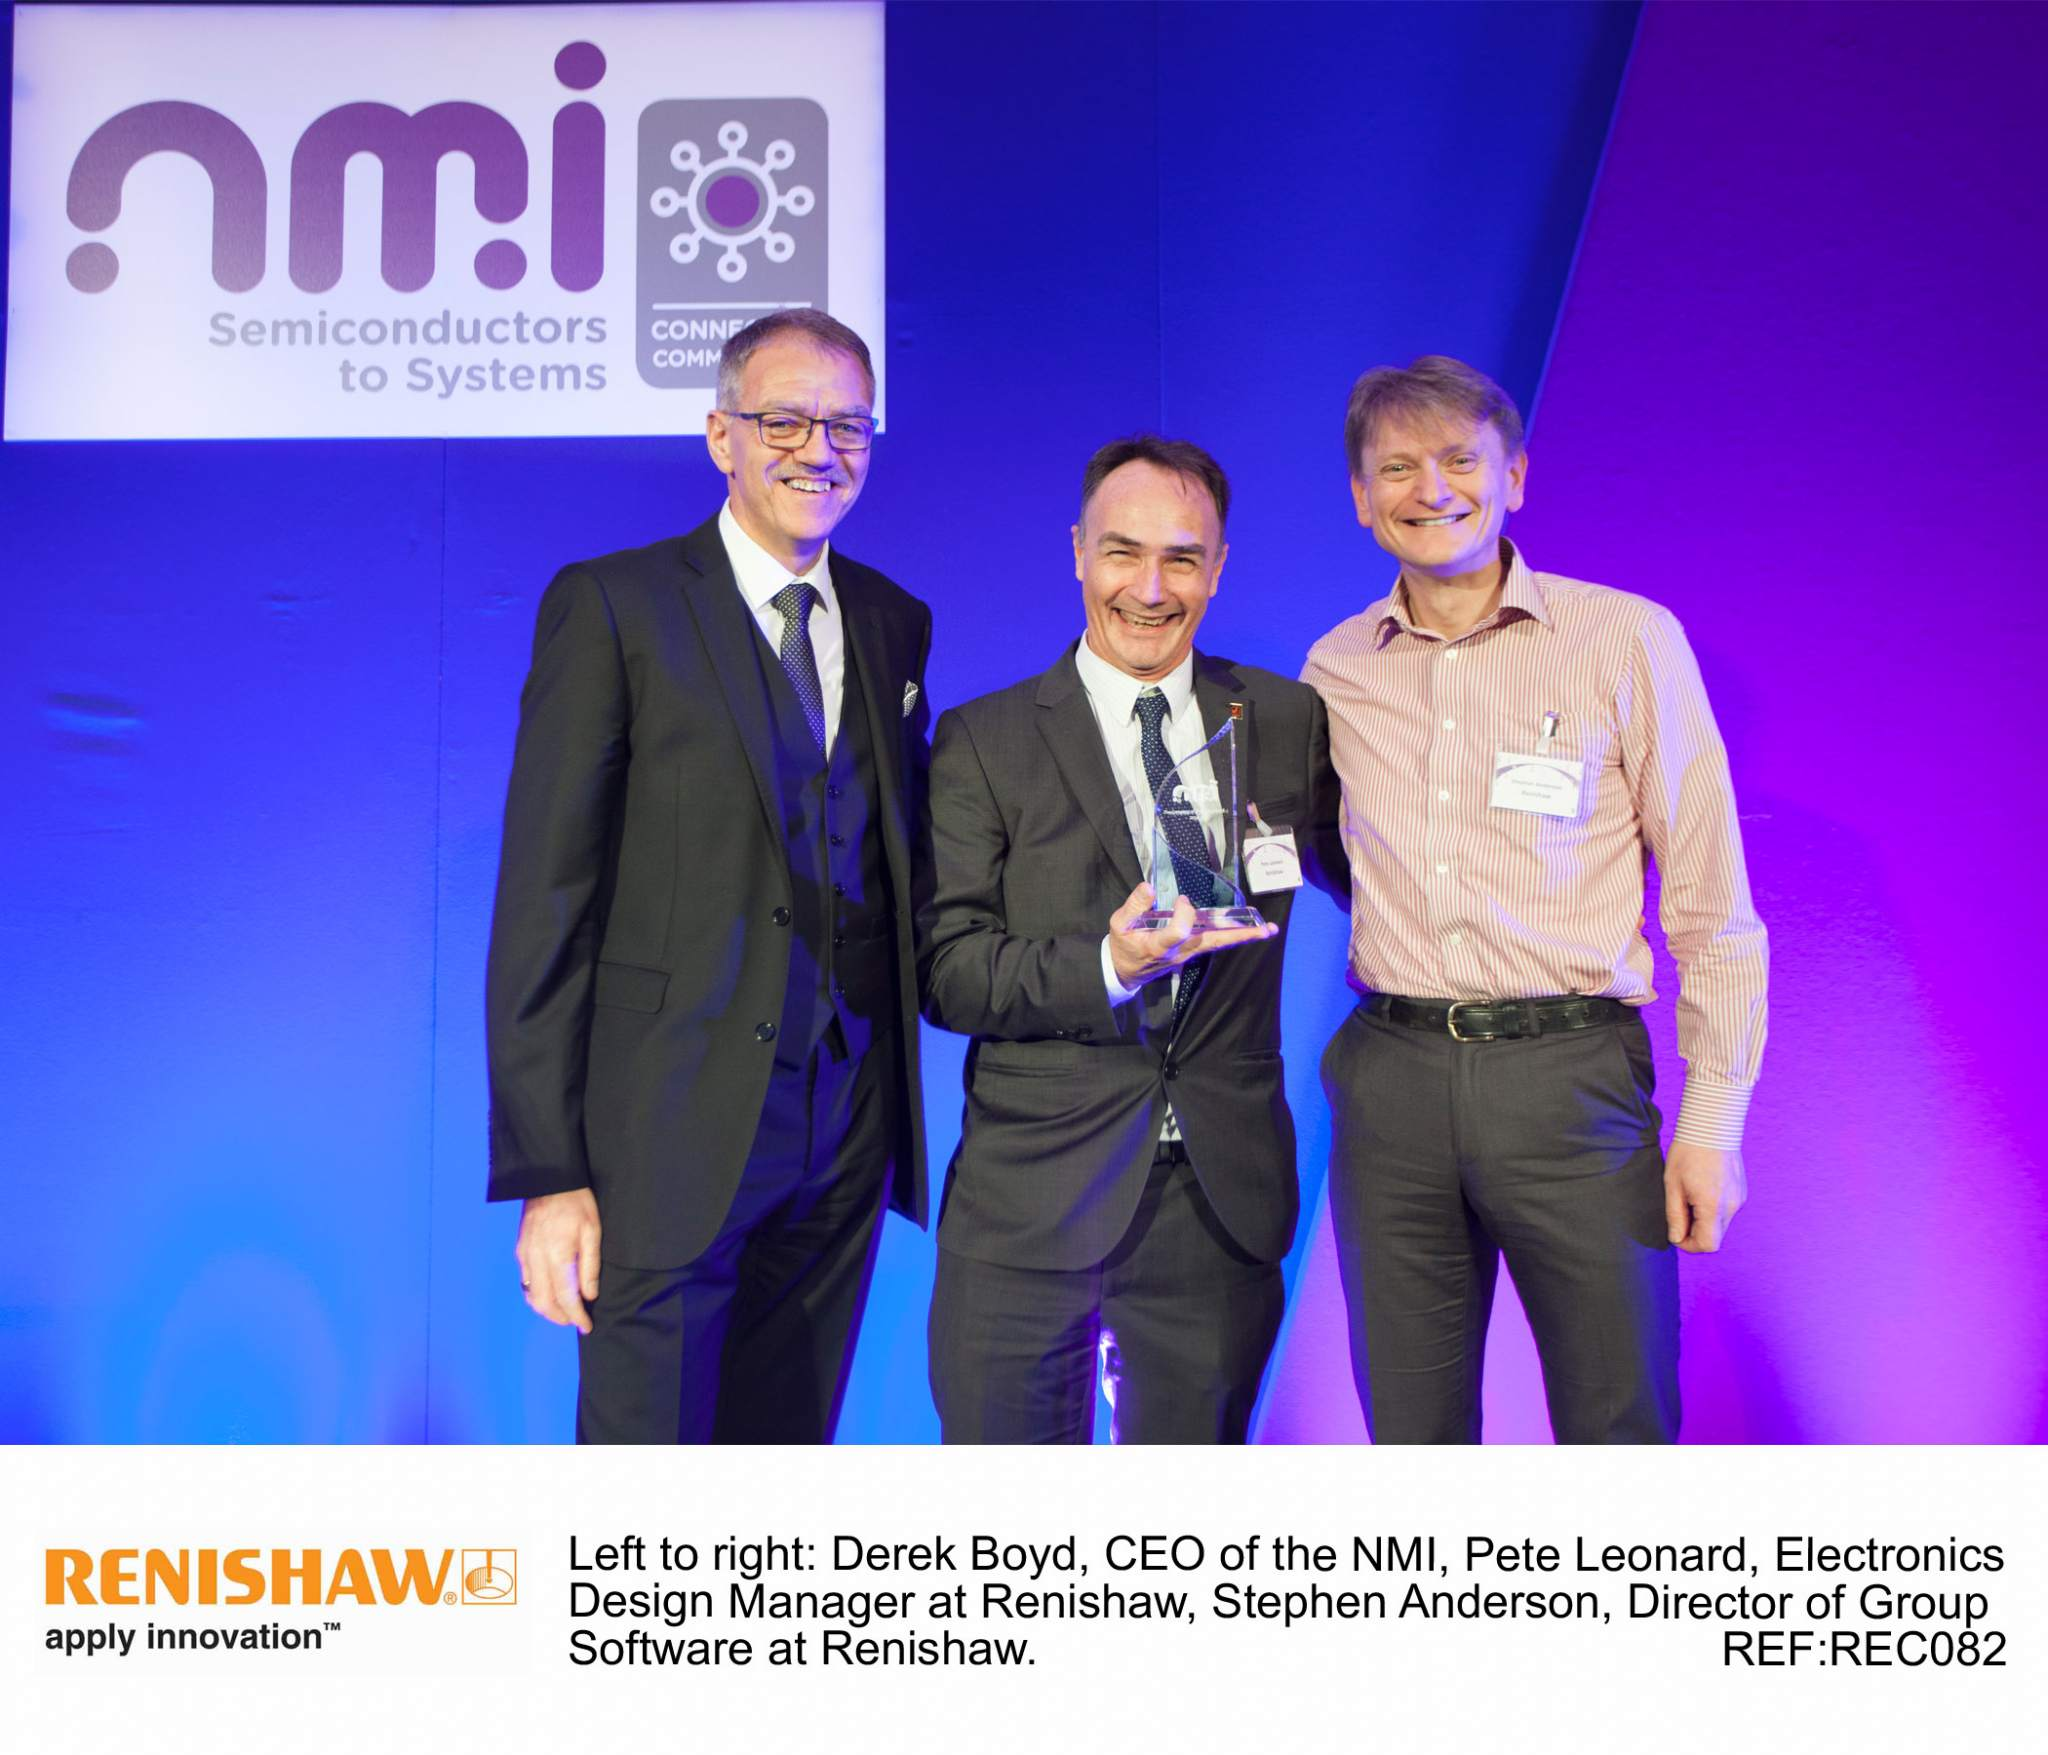 rec082-renishaw-wins-prestigious-company-of-the-year-at-nmi-awards